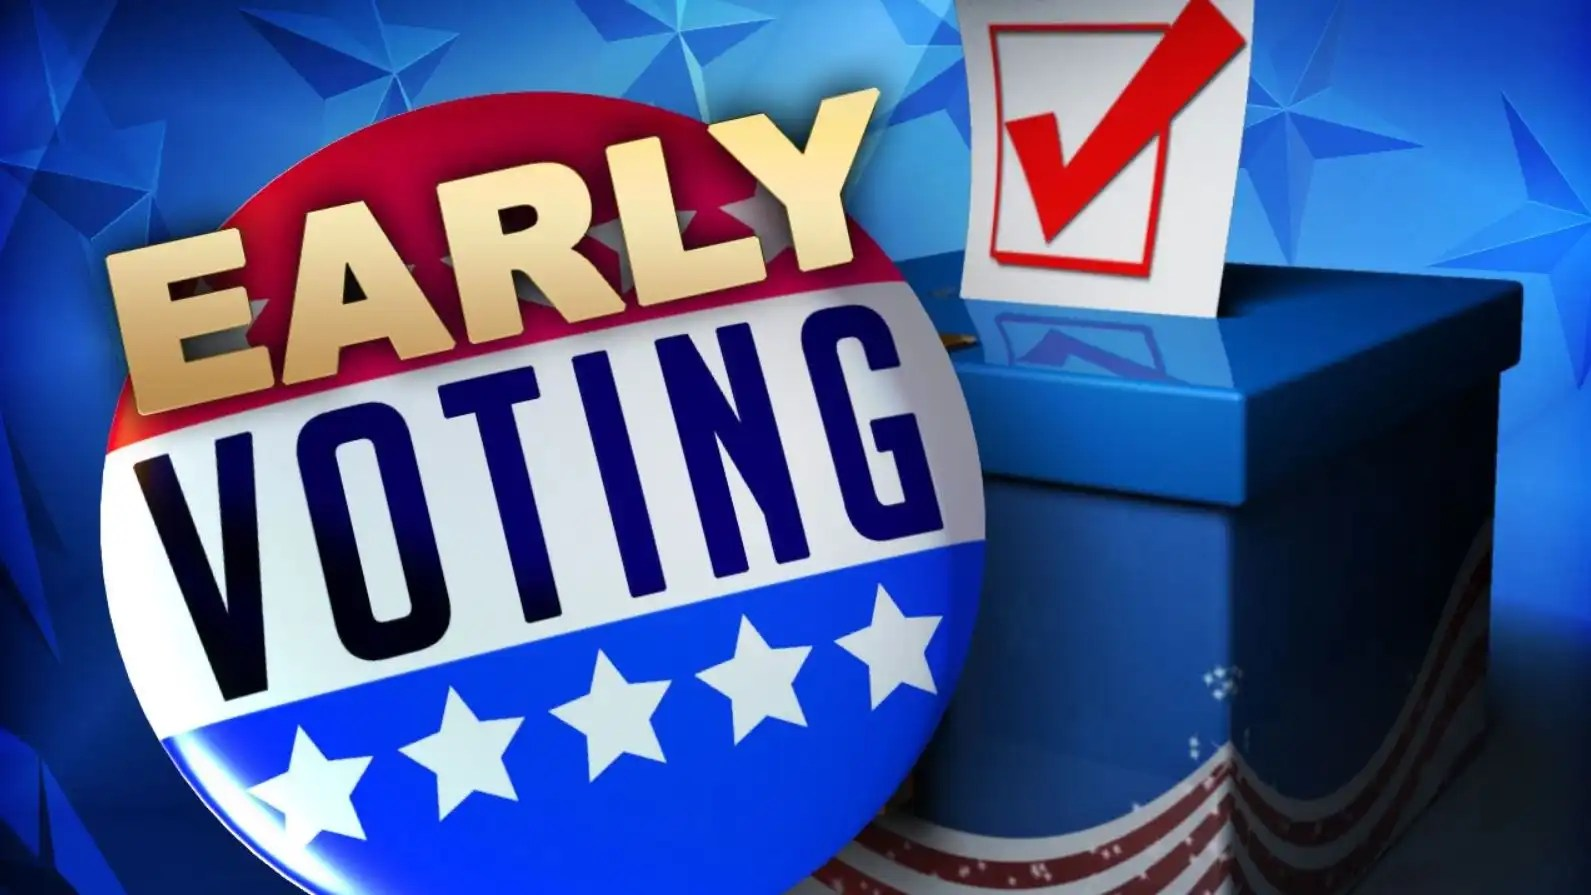 Deadline for absentee ballot approaching